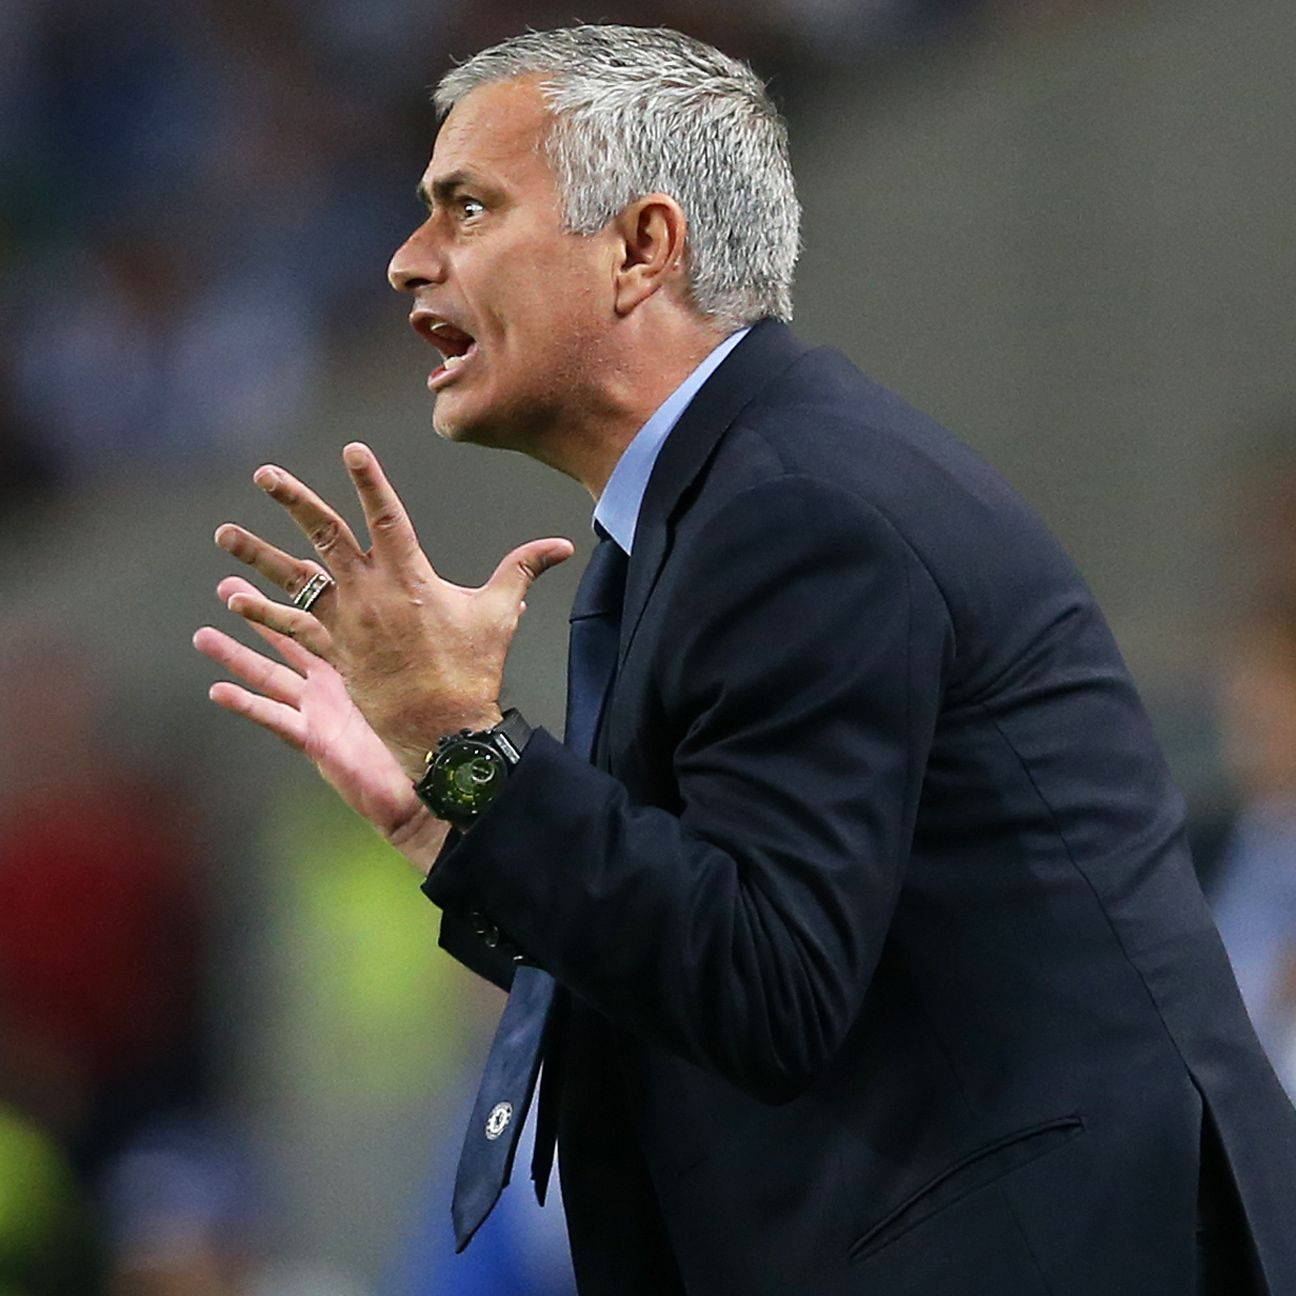 Currently third in Group G, Jose Mourinho's Chelsea will need all three points when they host Dynamo Kyiv on Tuesday.